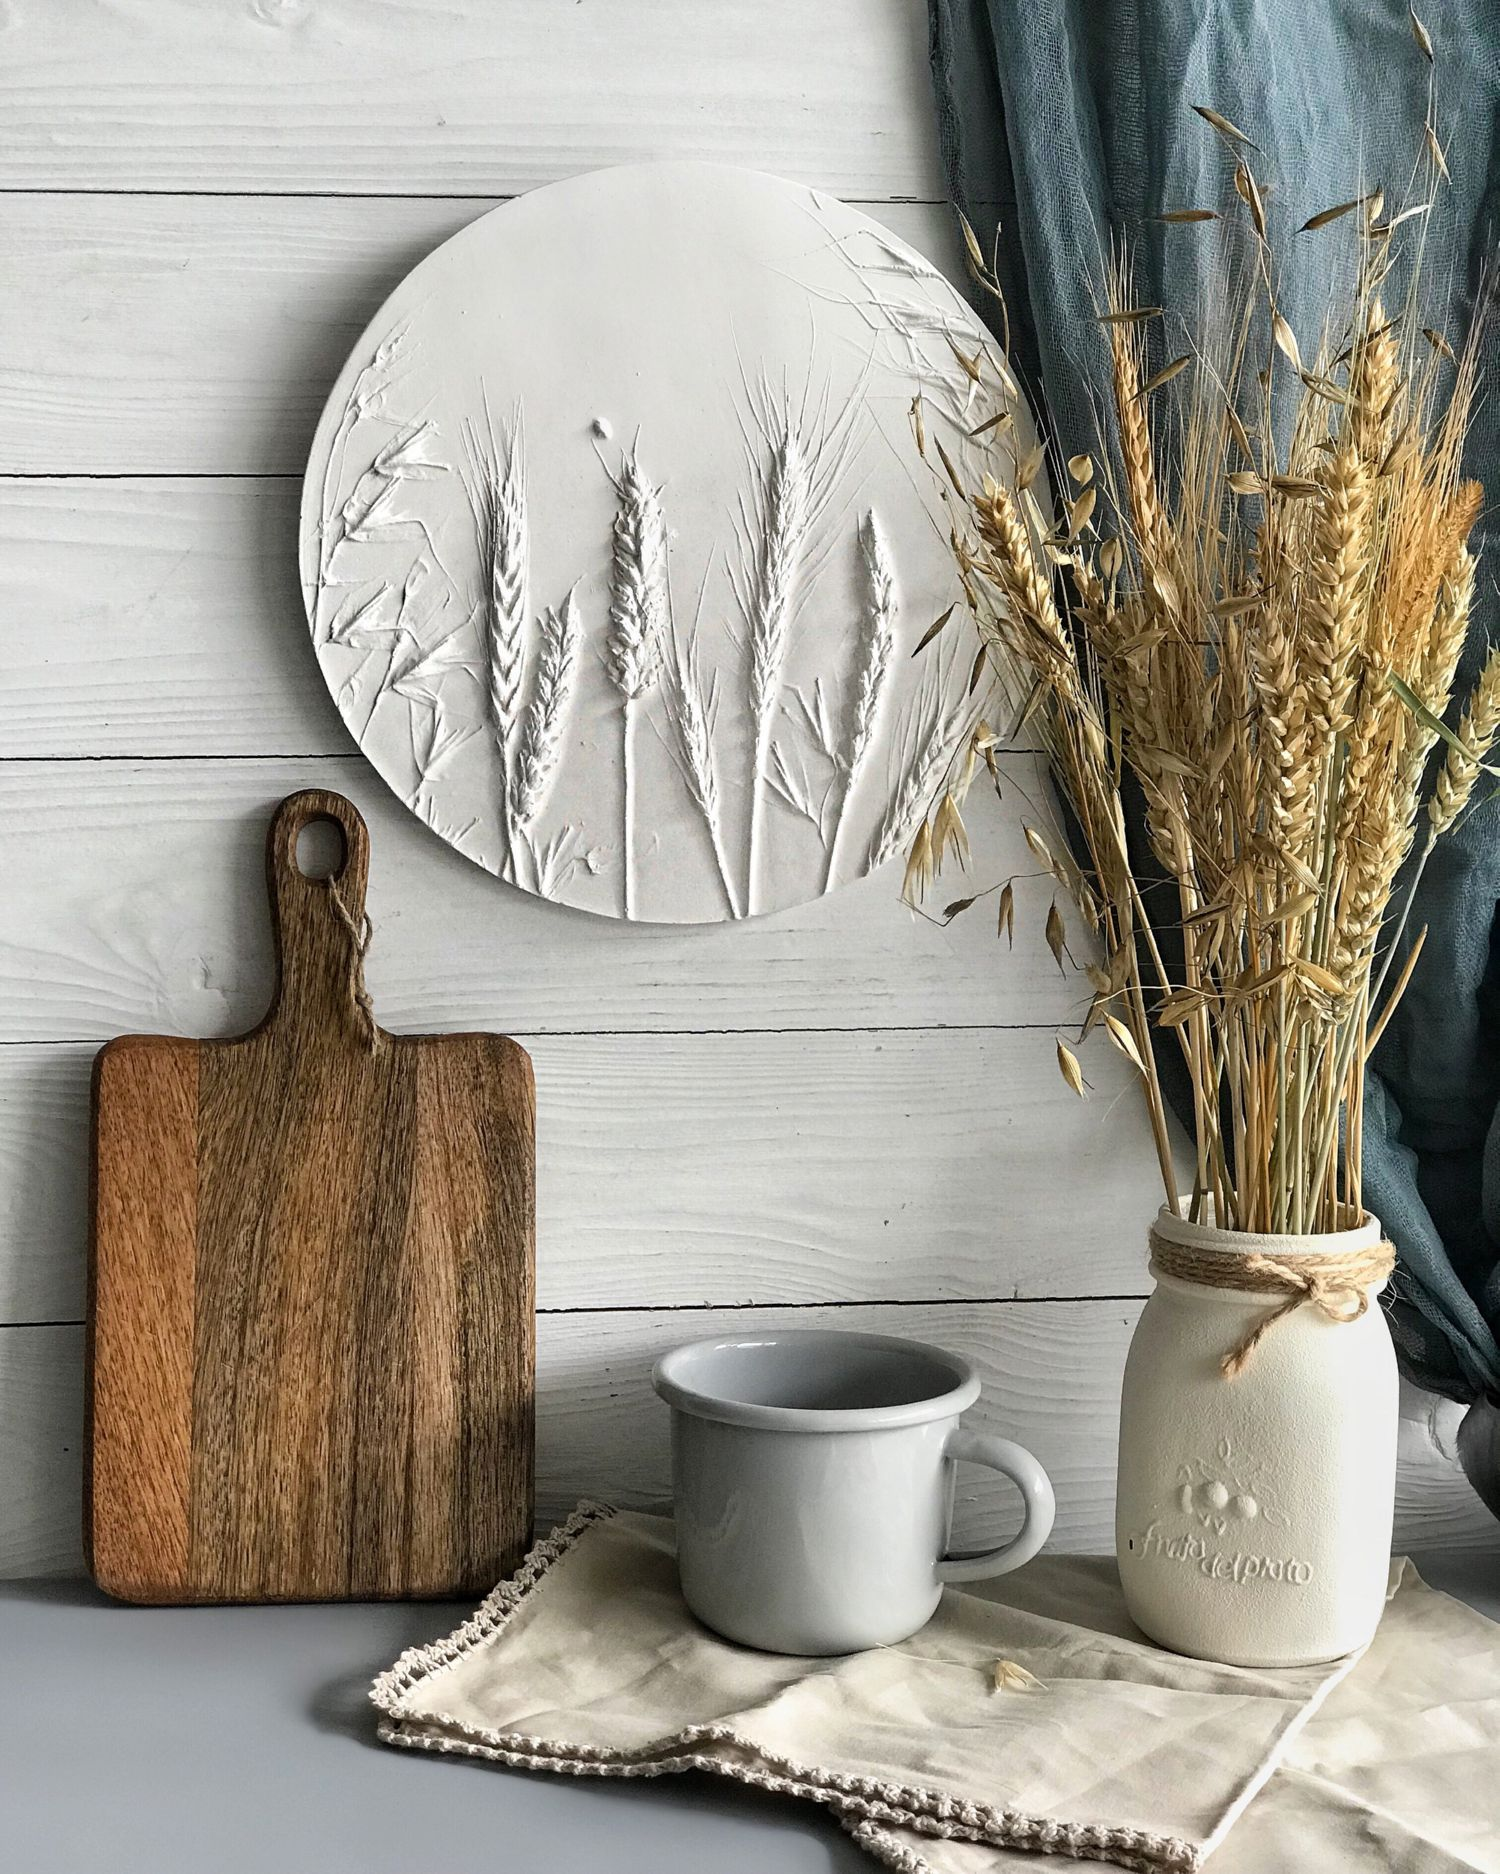 Farmhouse wall decor. Round panel depicting cereals